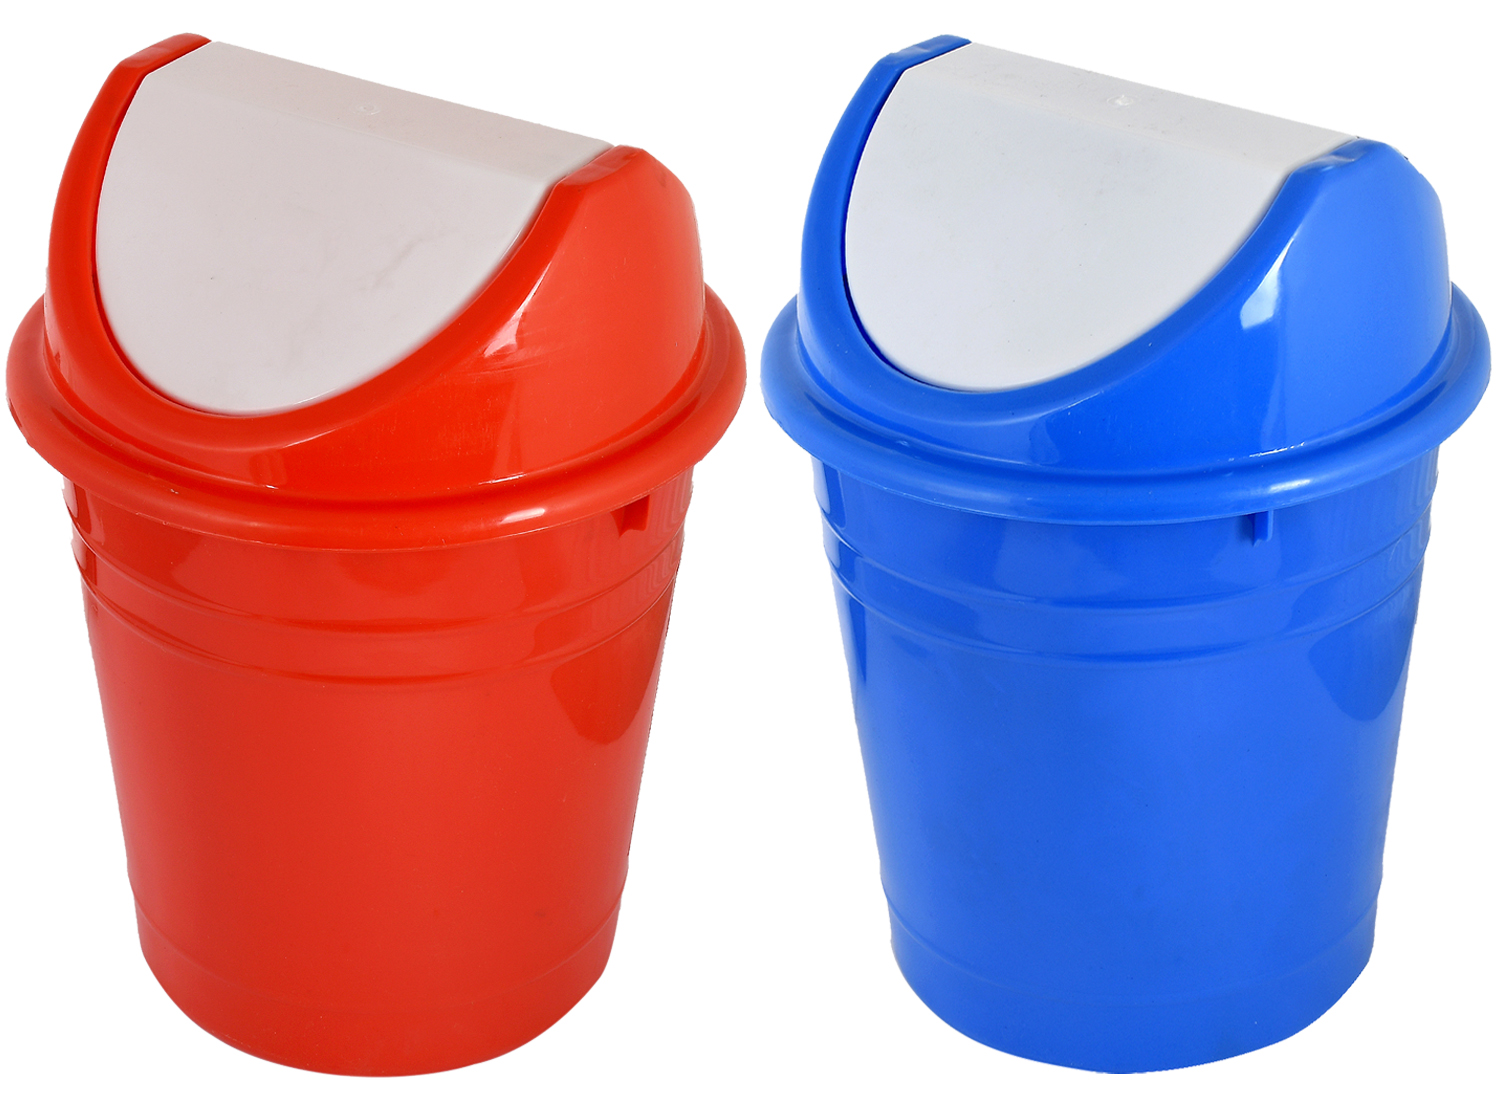 kuber-industries-plastic-2-pieces-medium-size-swing-lid-garbage-waste-dustbin-for-home-office-factory-10-liters-red-amp-blue--ctktc38719-555002_l